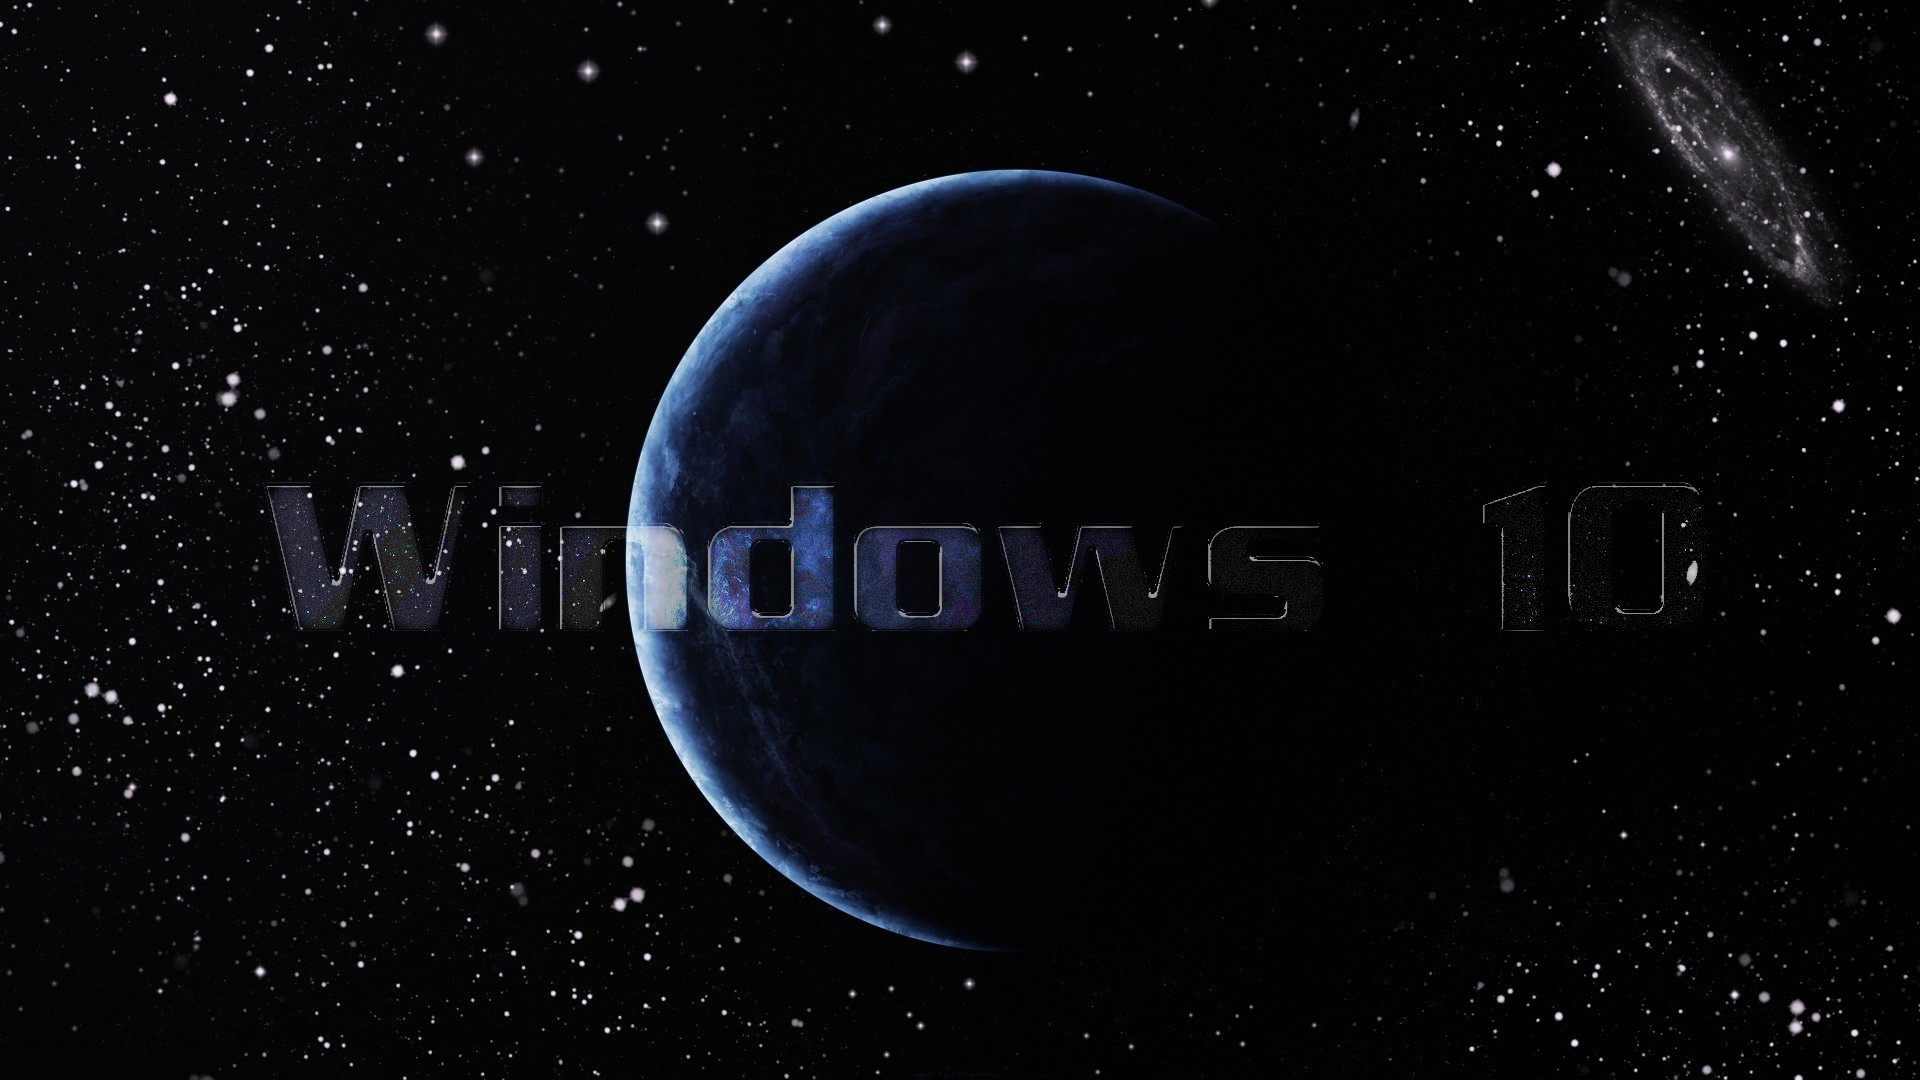 Windows 10 Earth Wallpapers Hd 64 Images